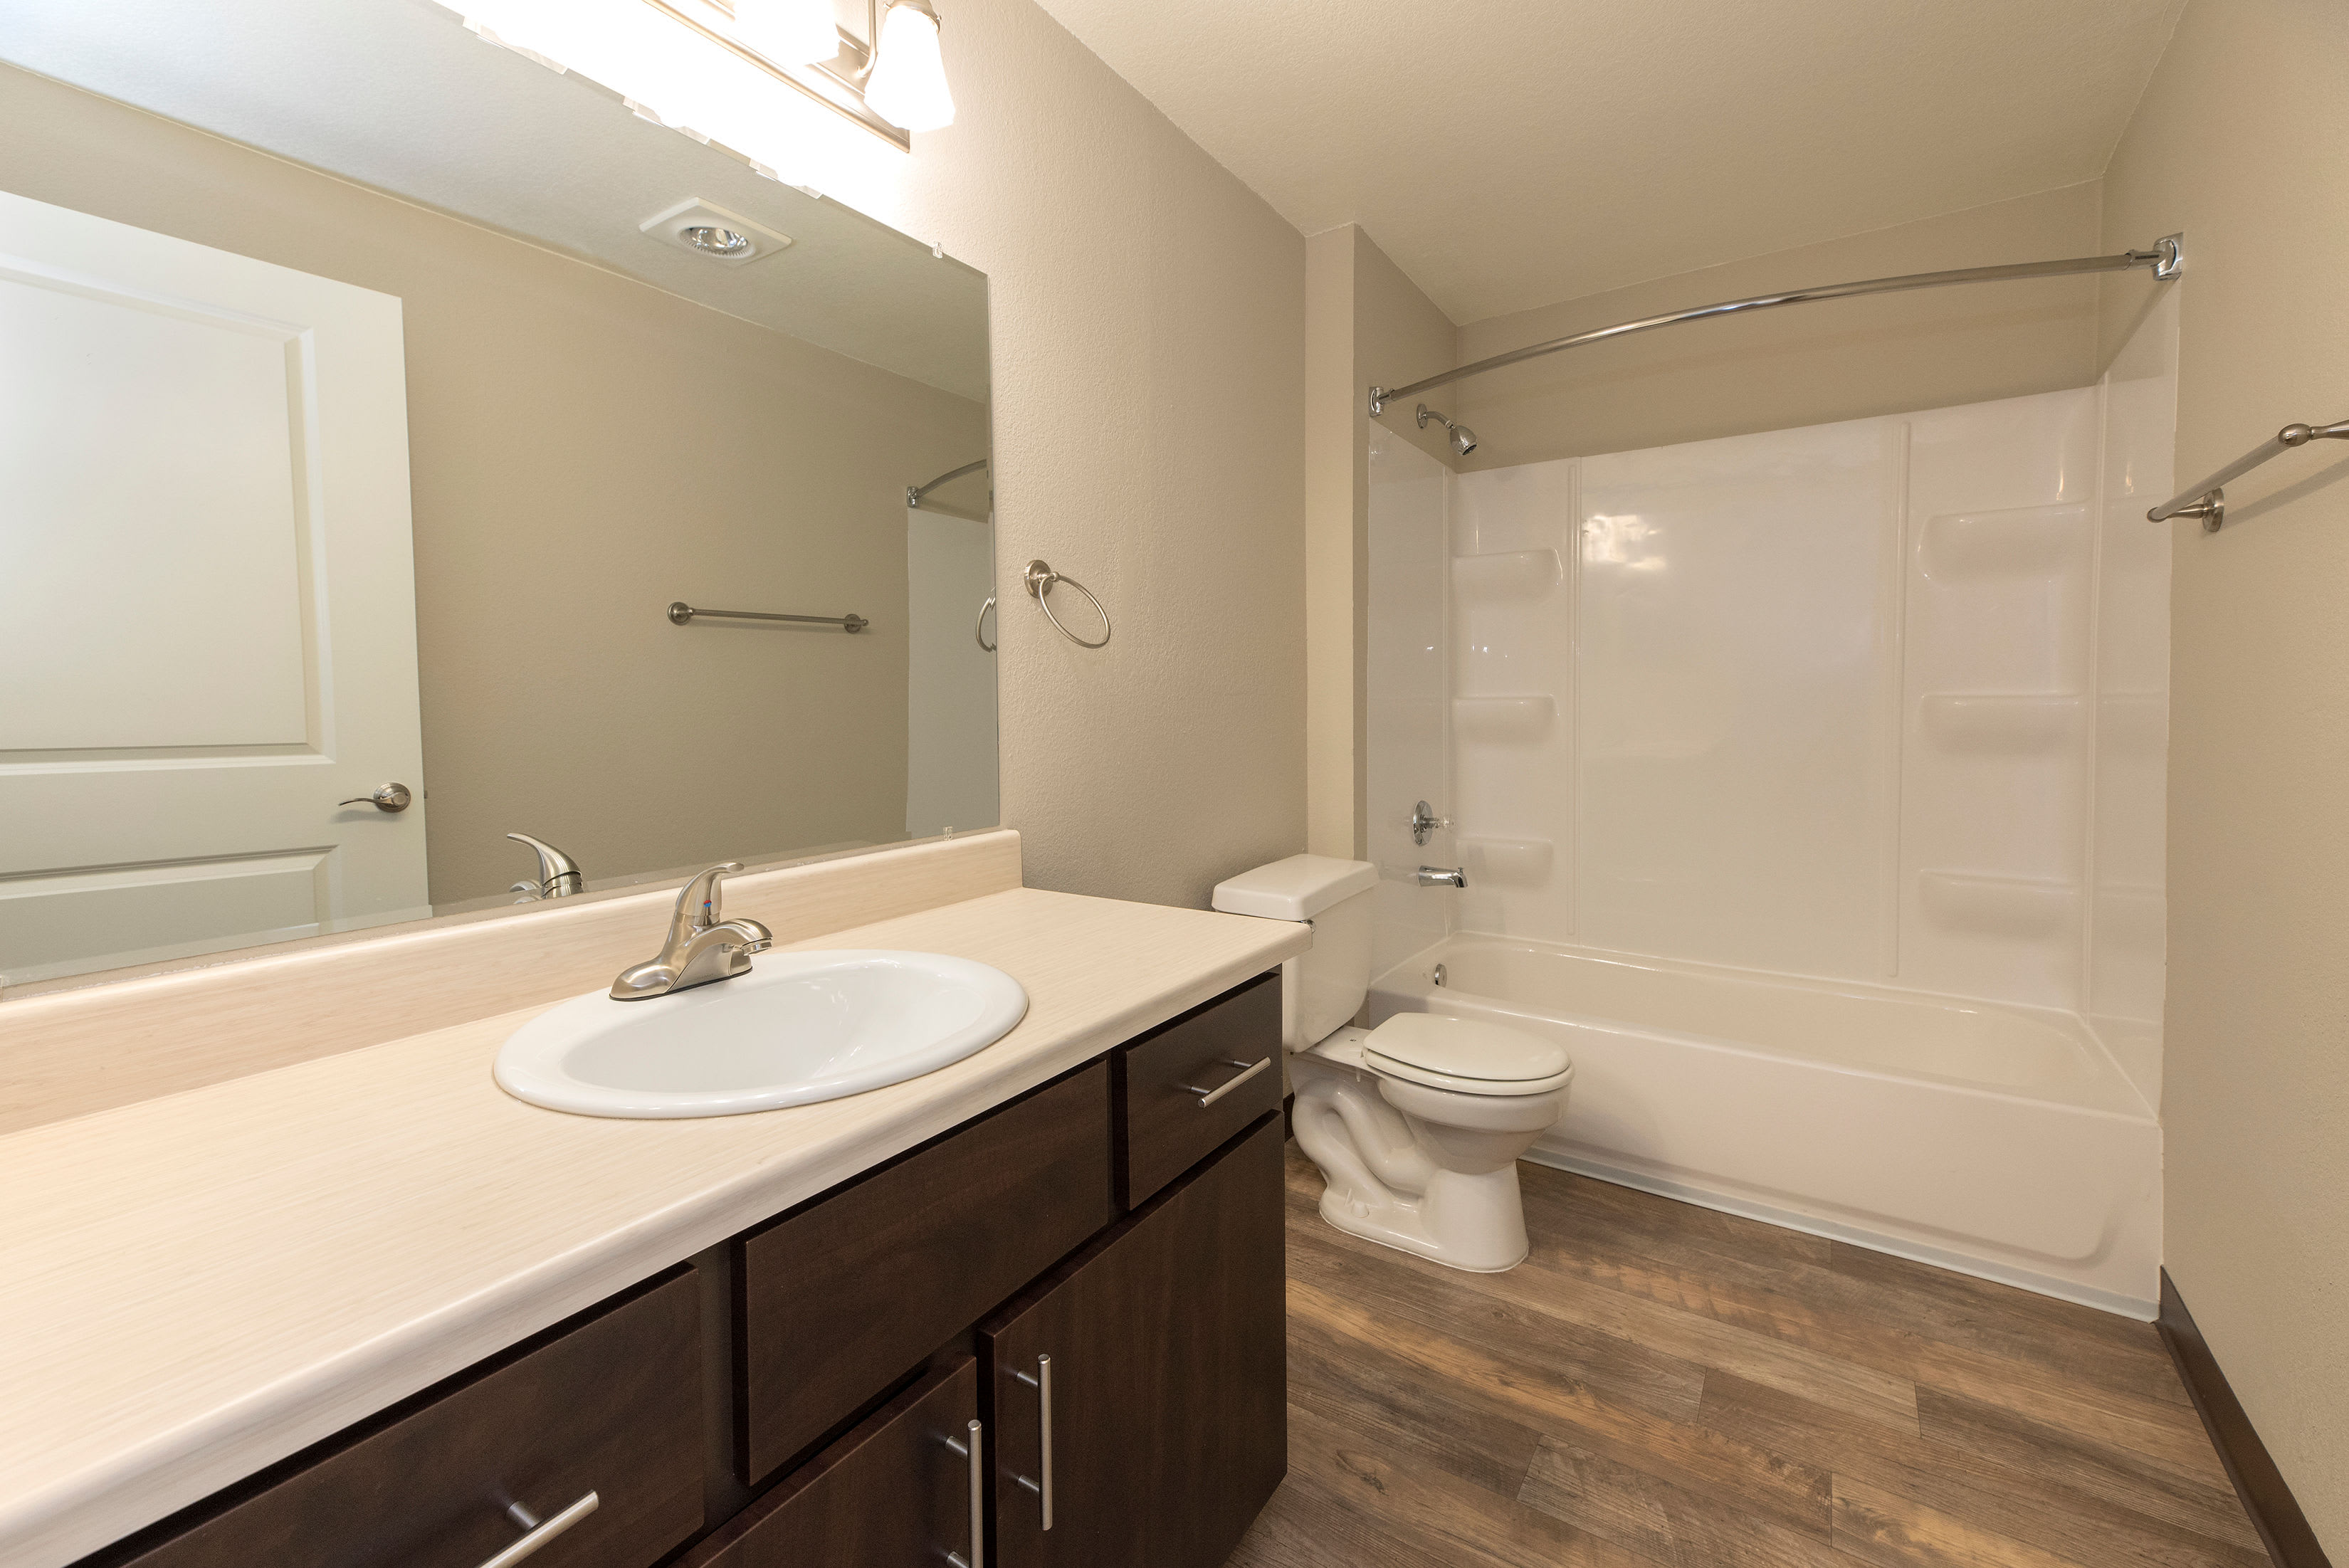 Bathroom at Slate Ridge at Fisher's Landing Apartment Homes in Vancouver, Washington